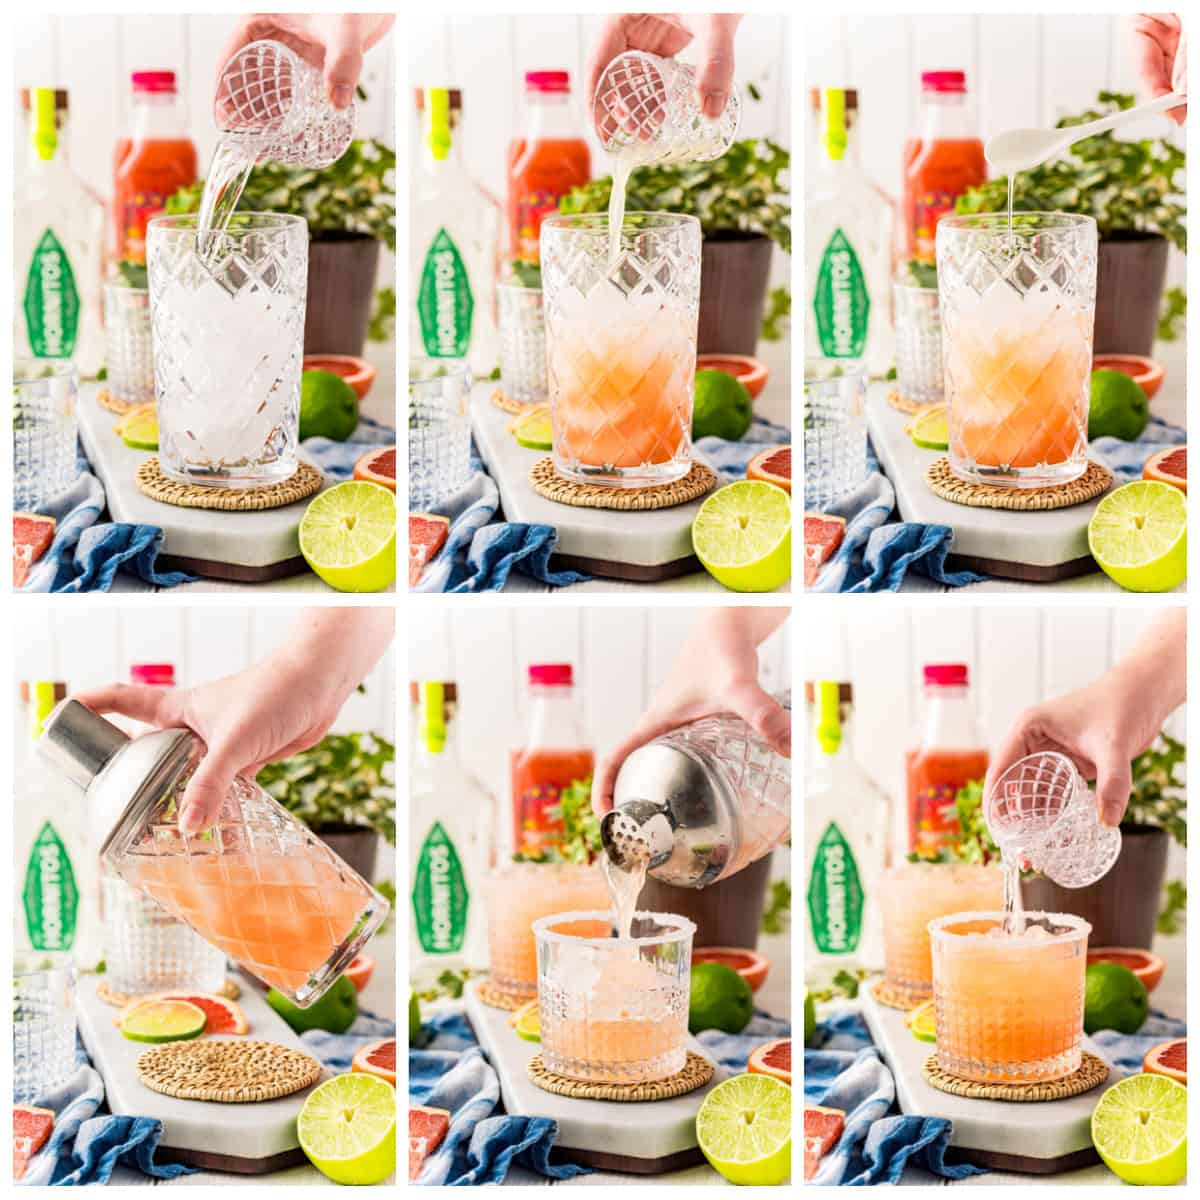 Step by step photos on how to make a Paloma Cocktail